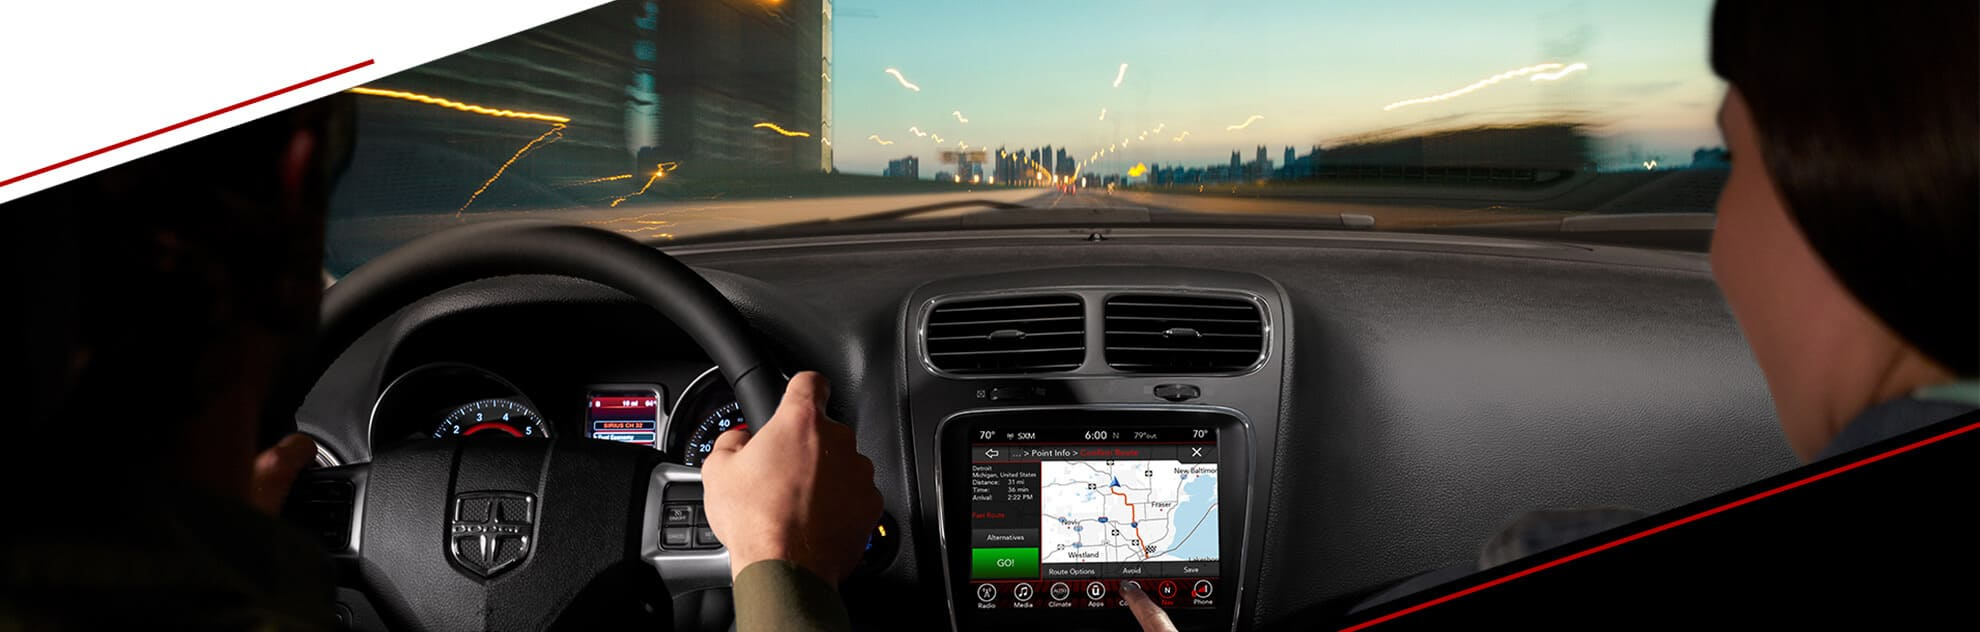 2020 Dodge Journey Interior 3rd Row Seating More